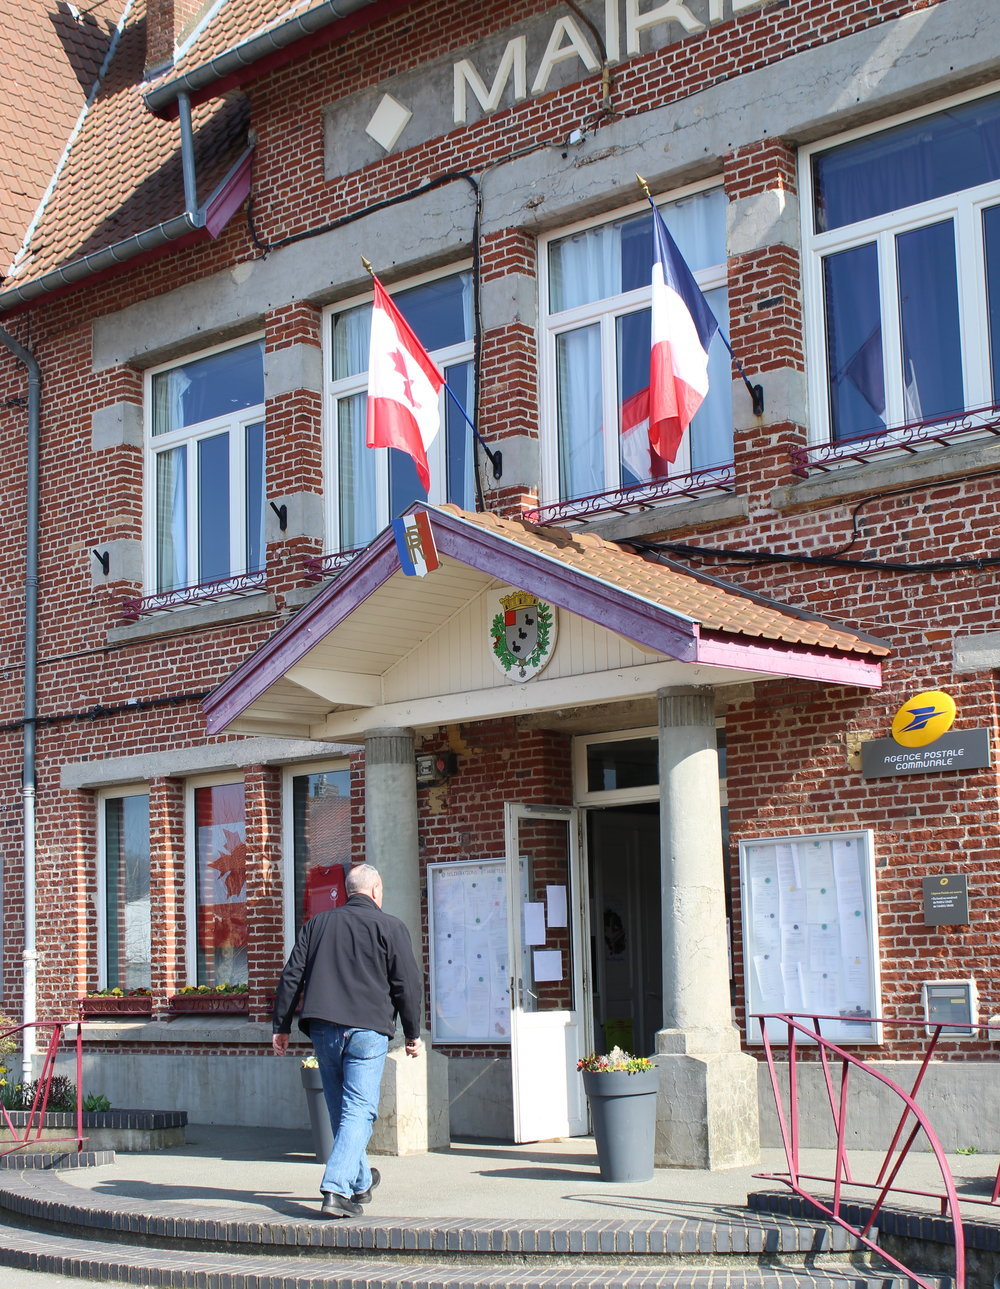 The mairie (town hall) is the location of the free English lessons for villagers.